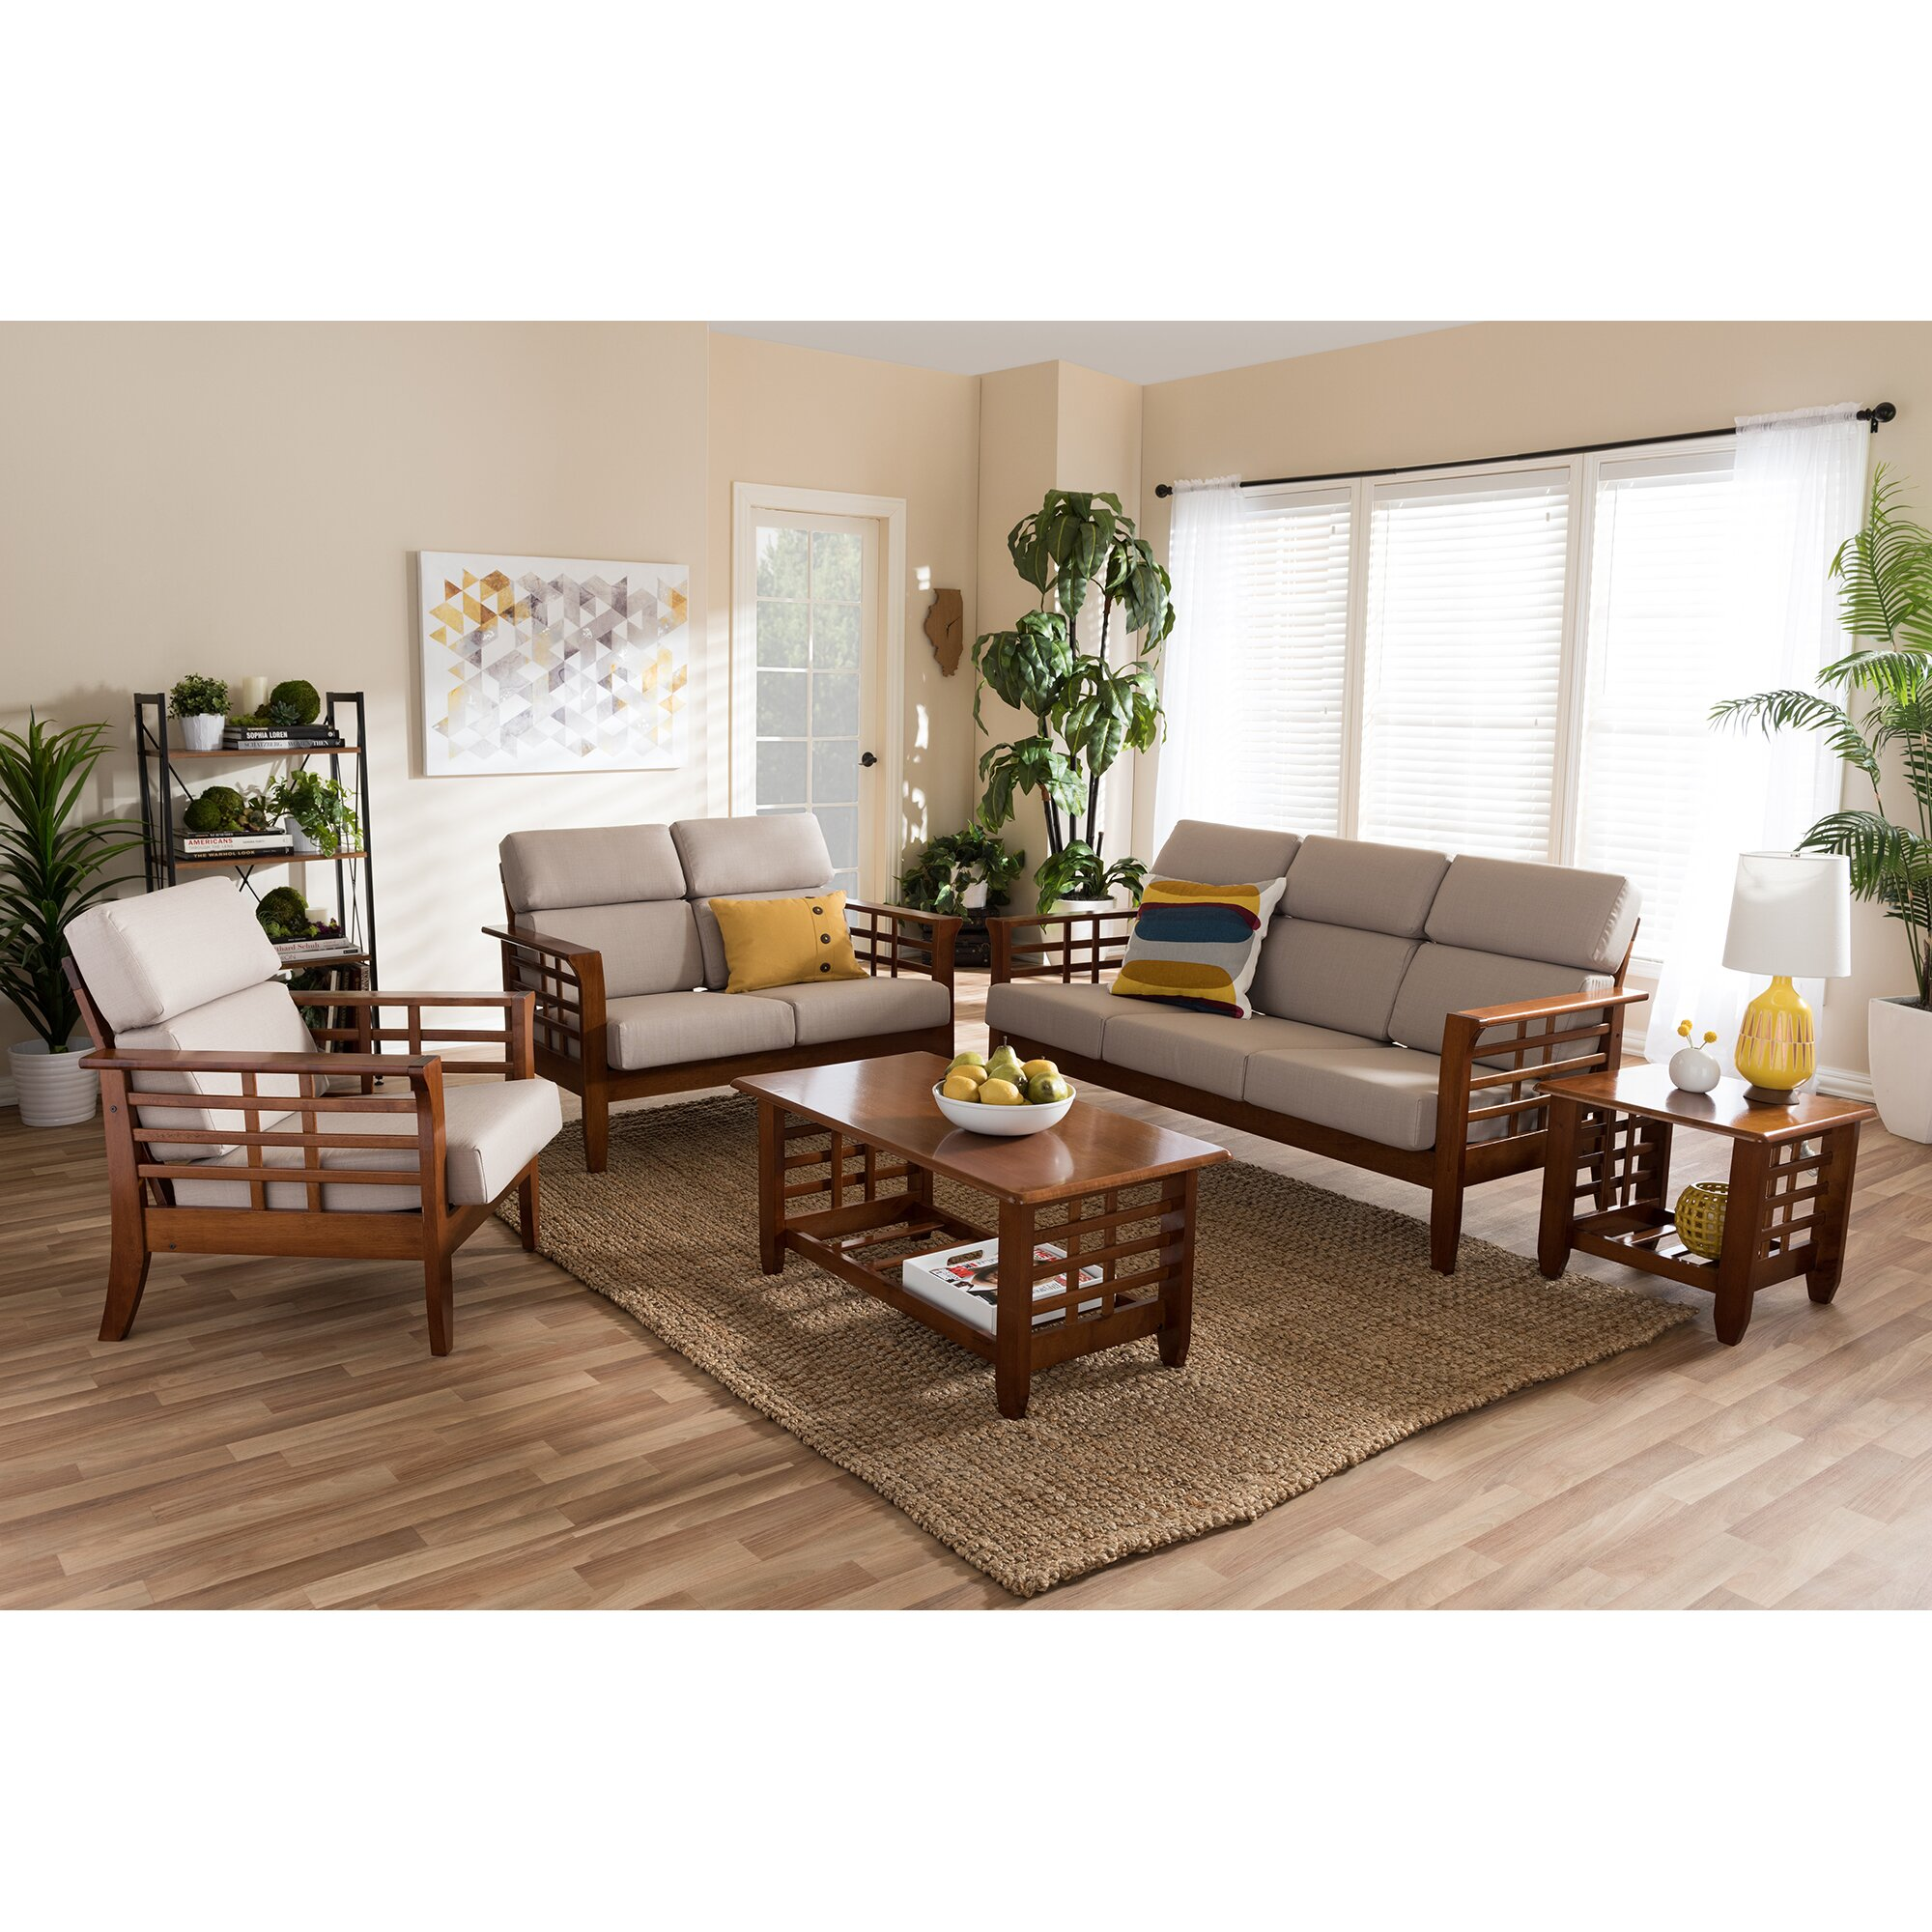 Whole living room sets for Wholesale living room furniture sets